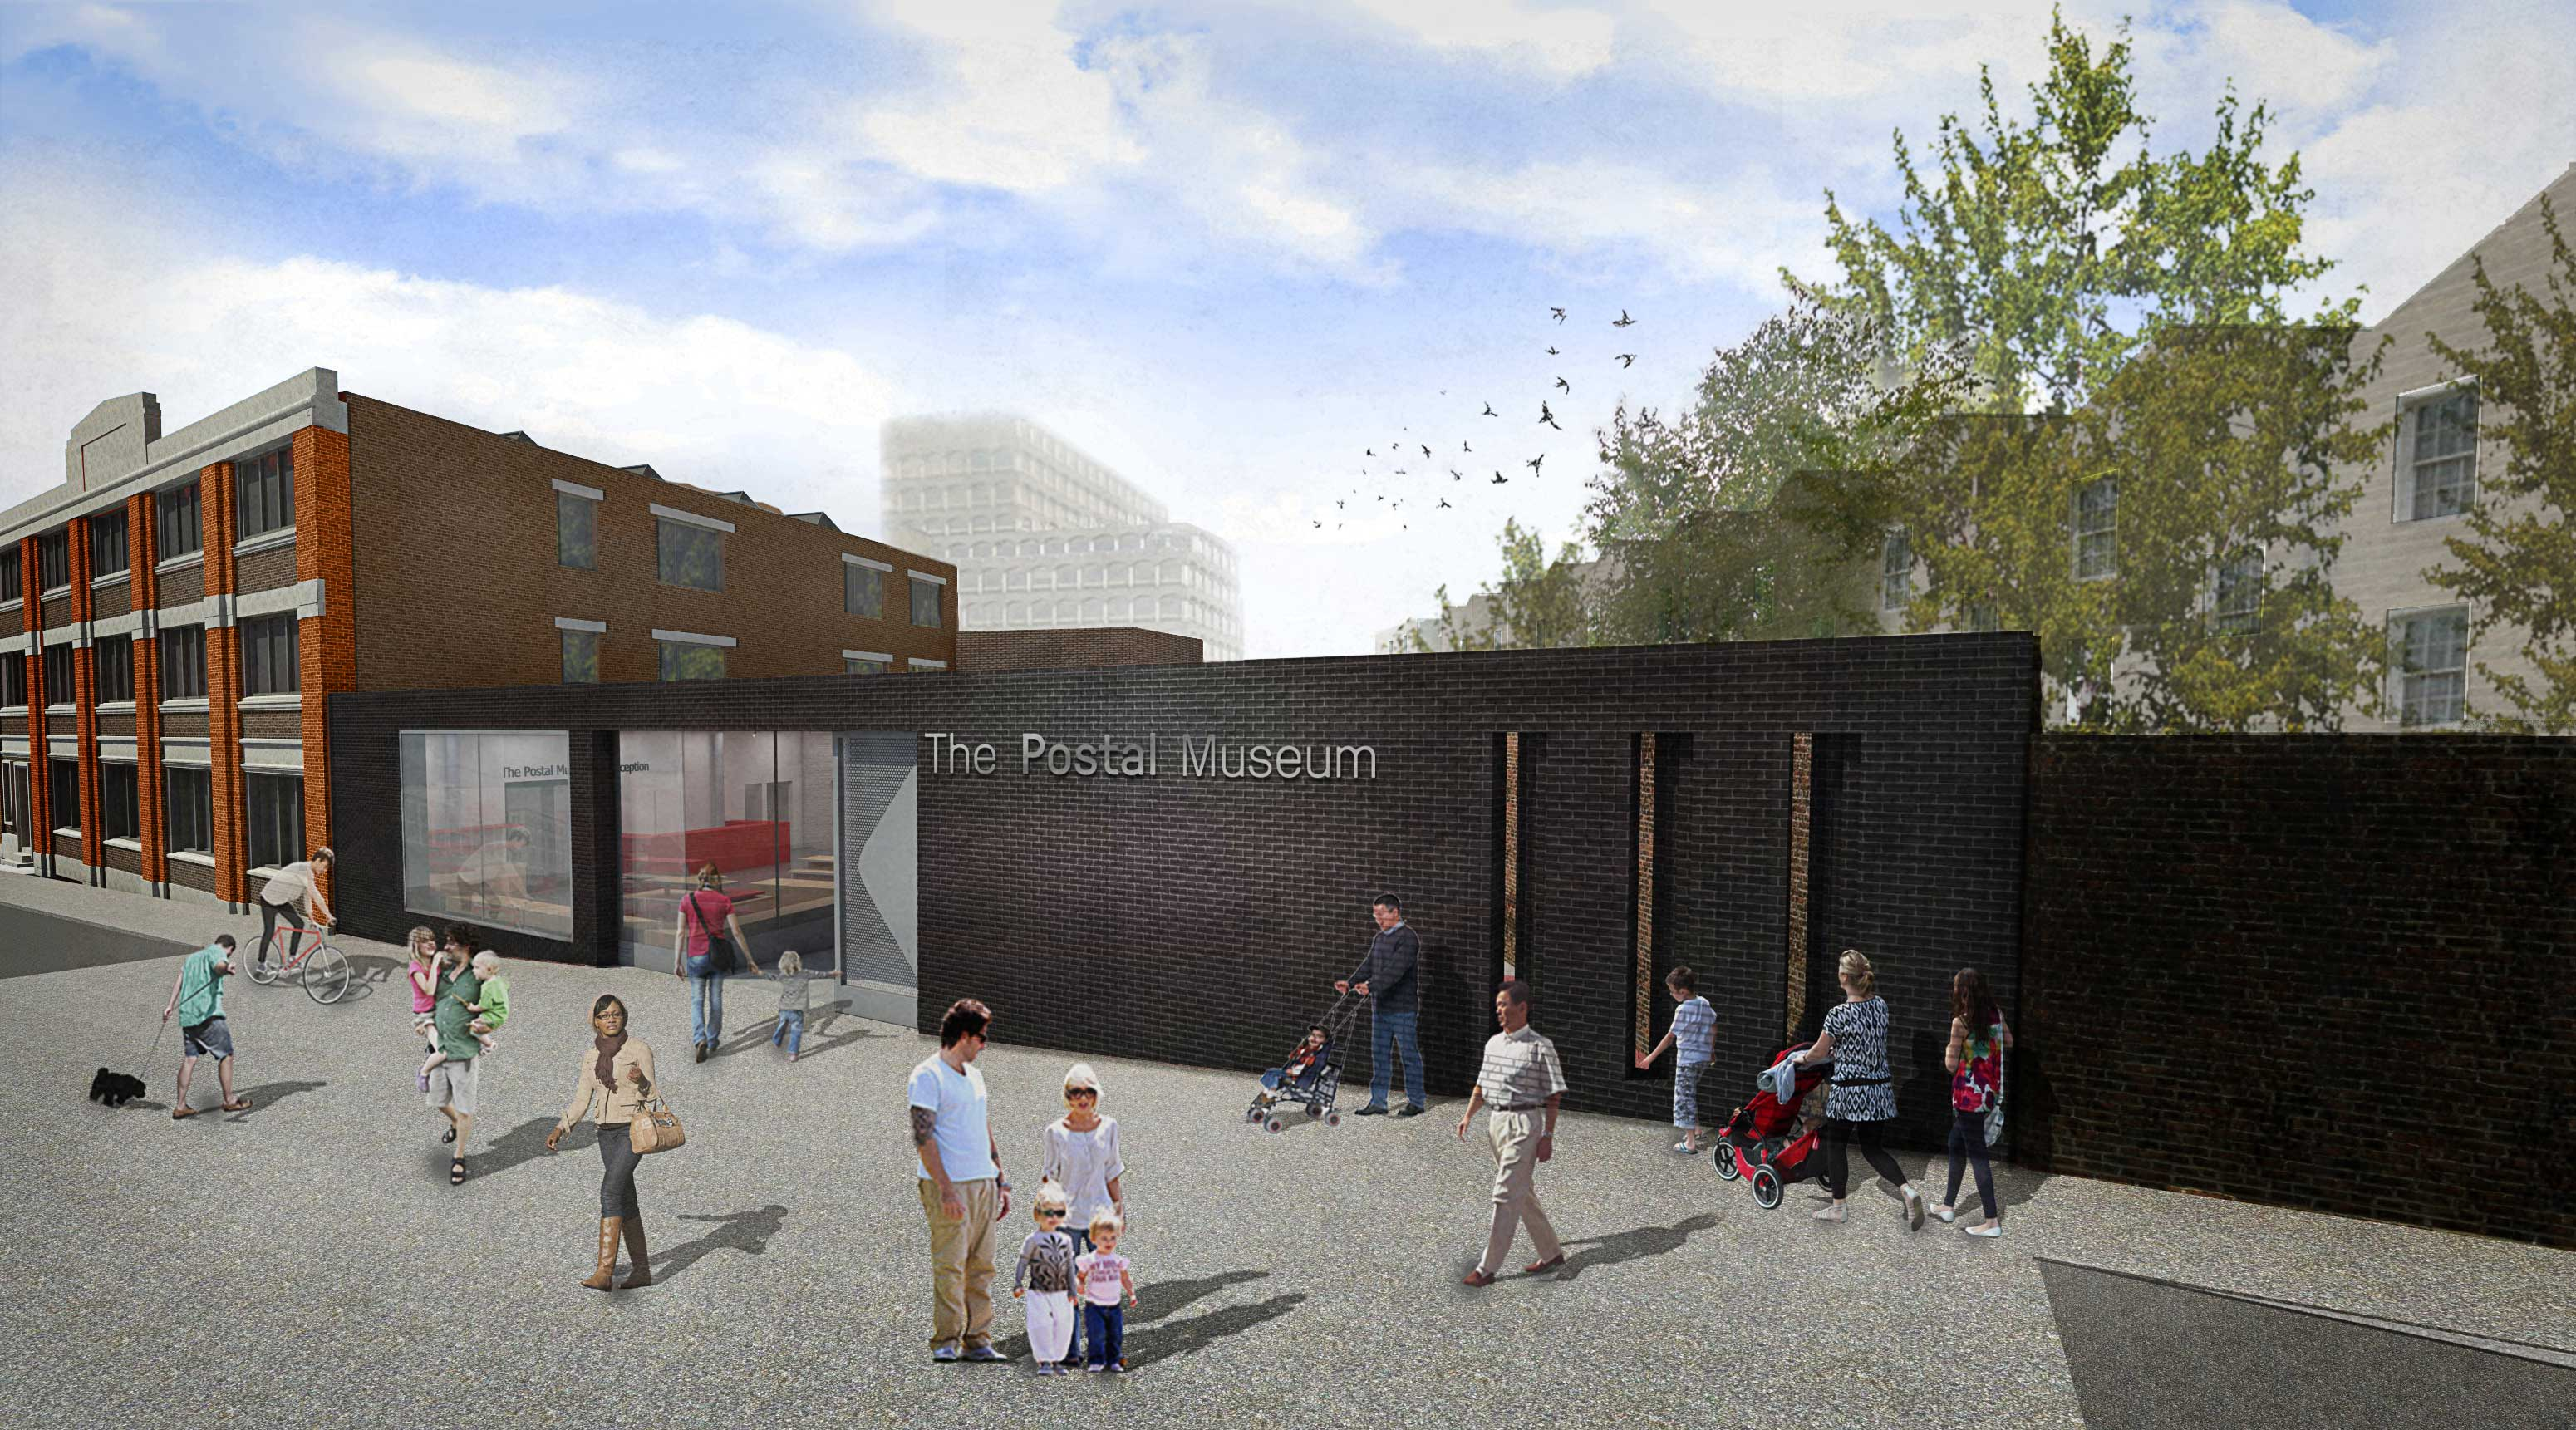 Visualisation of how the Postal Museum facade might look